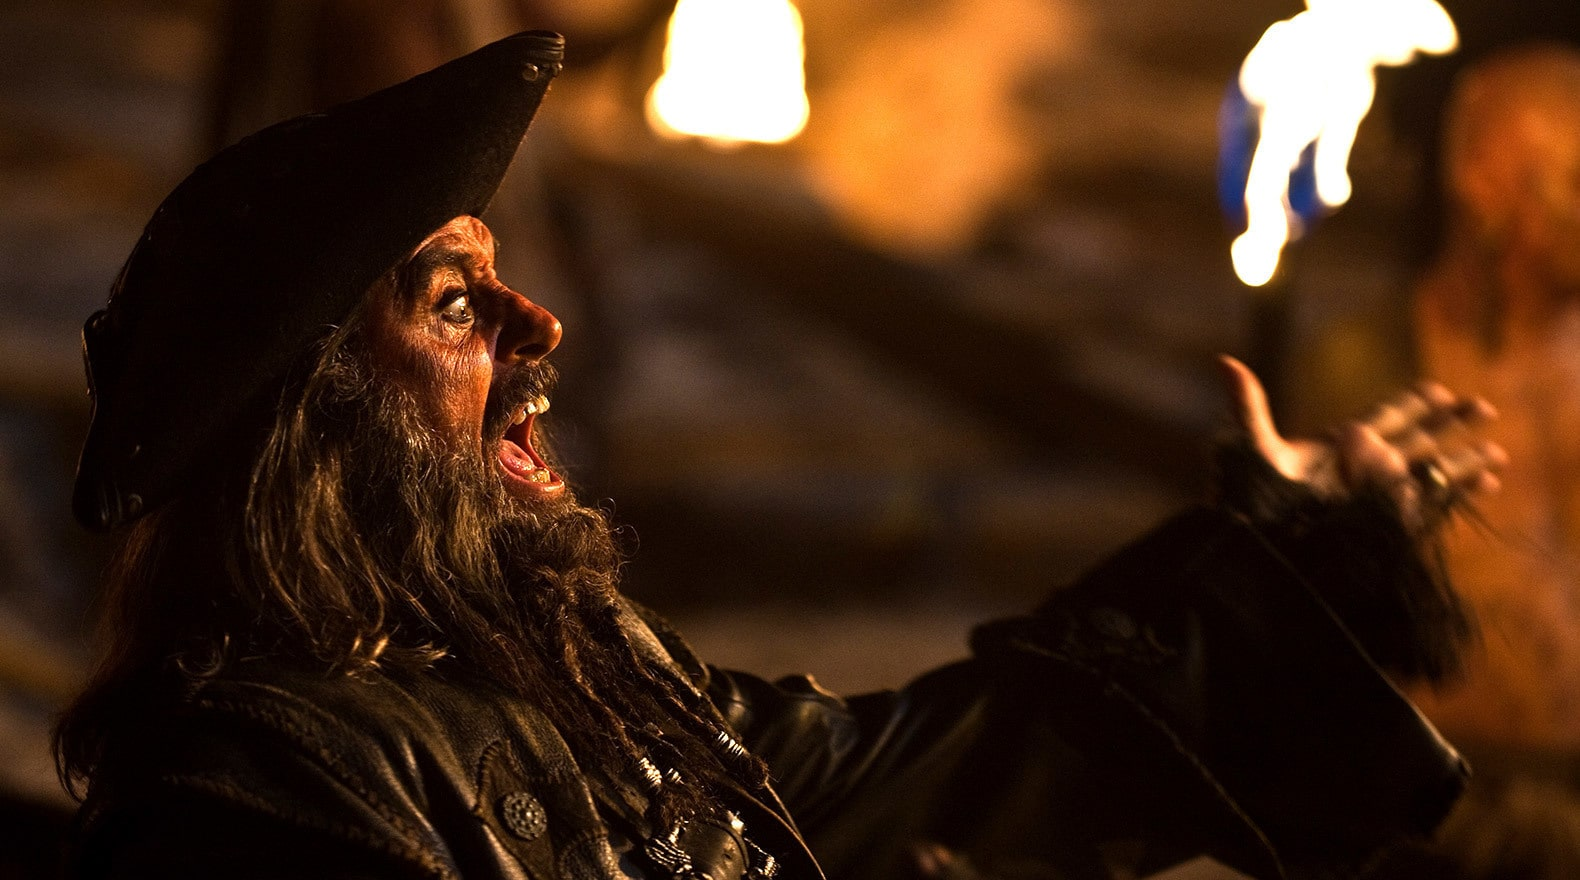 """Meet Captain Edward Teach, better known as 'Blackbeard'!"""